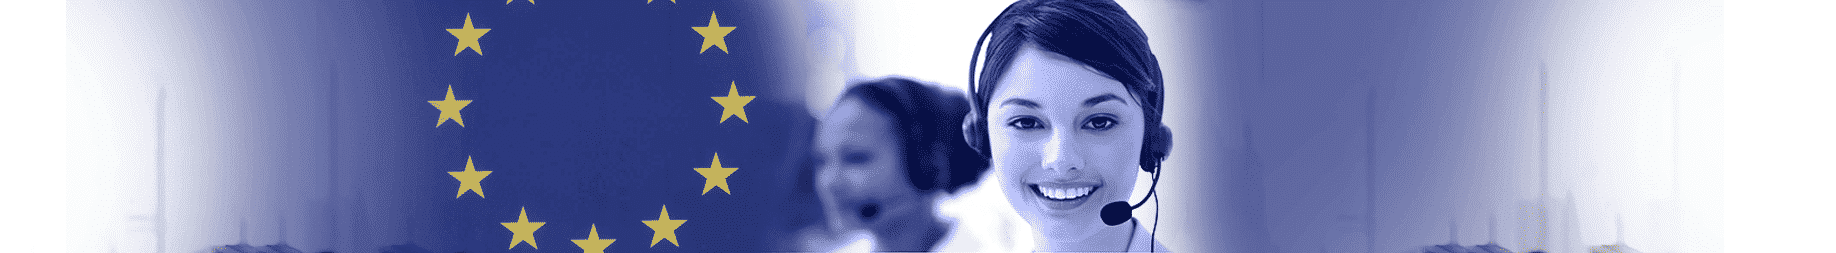 German | Call Centers in Europe | European Call Centers | Multilingual Services | Call Centers in Europe | Worldwide Call Centers - Your European Call Center Outsourcing Experts | Agencies | Call Centres | Europe | UK | Germany | France | German Call Centers | French Call Centers | Italian Call Centers